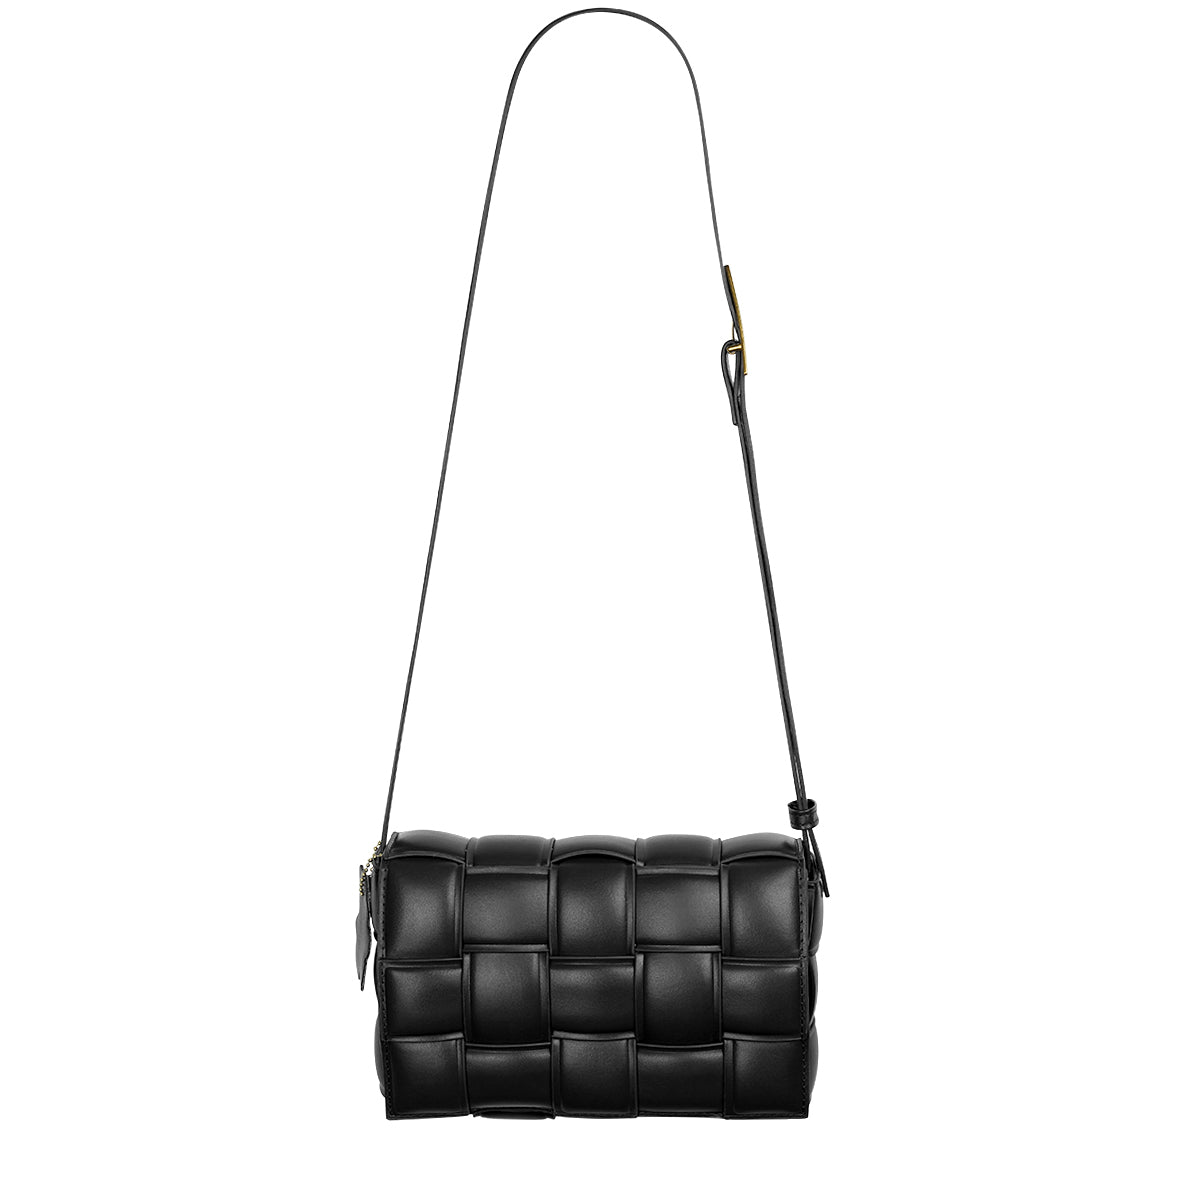 Venetia Bag Black